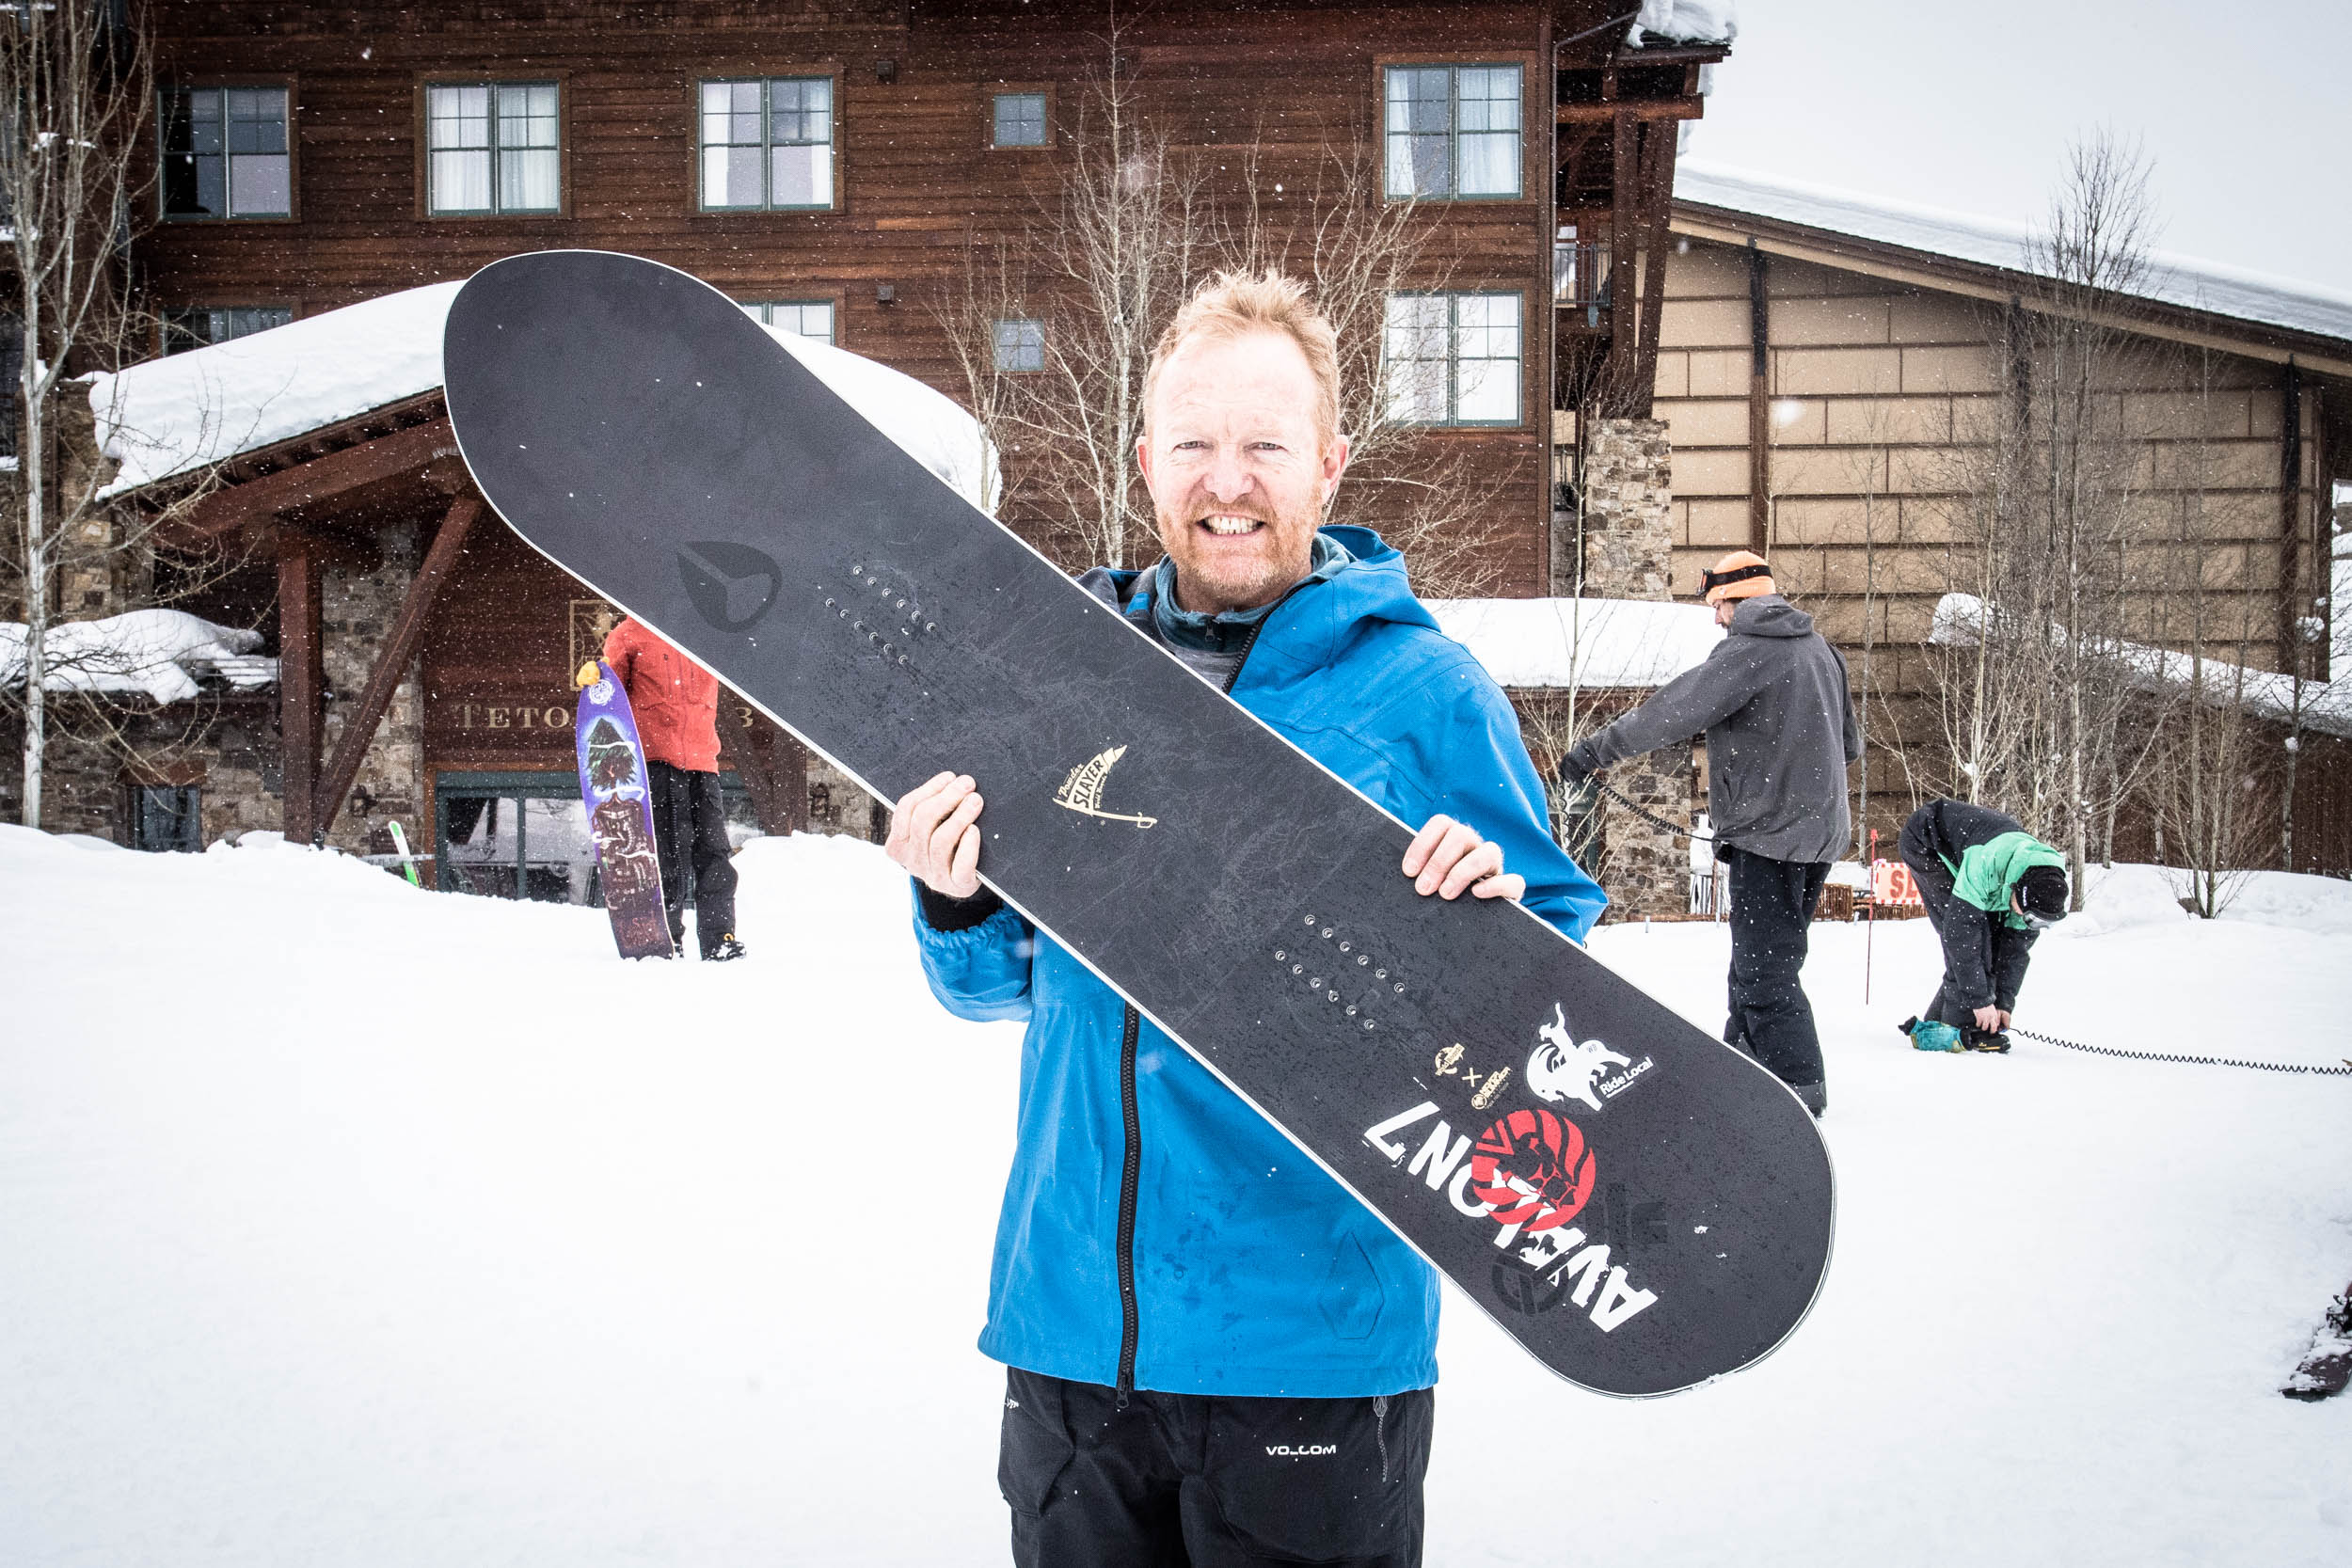 World Boards founder and Powder Slayer designer, Jay Moore, holds the prized Powder Slayer.. Click to view image.